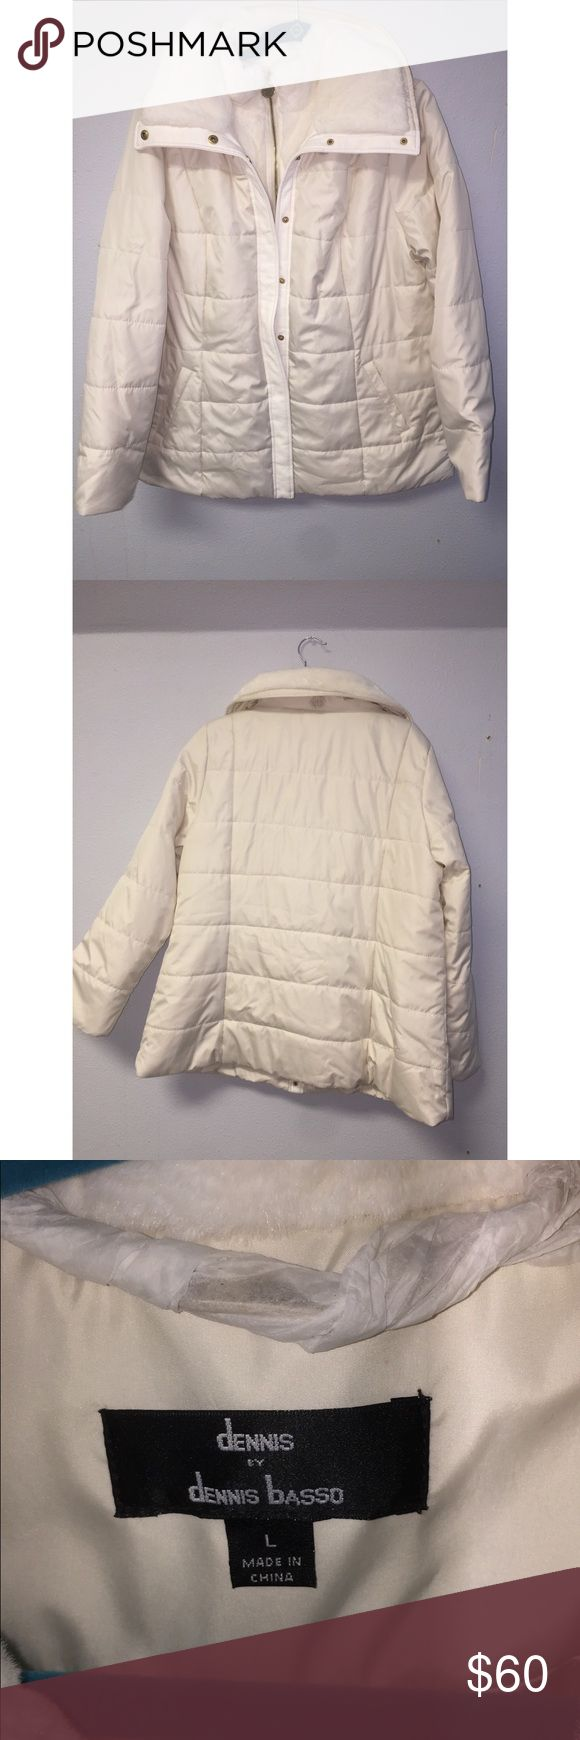 Dennis Basso | White Hooded Puffer Jacket Fur Hooded puffer jacket with fur from Dennis Basso NWOT, still can see the paper wrap around hanger. It's too big for me, just want it out of my closet! No wear whatsoever! I love bundles and offers! Dennis Basso Jackets & Coats Puffers